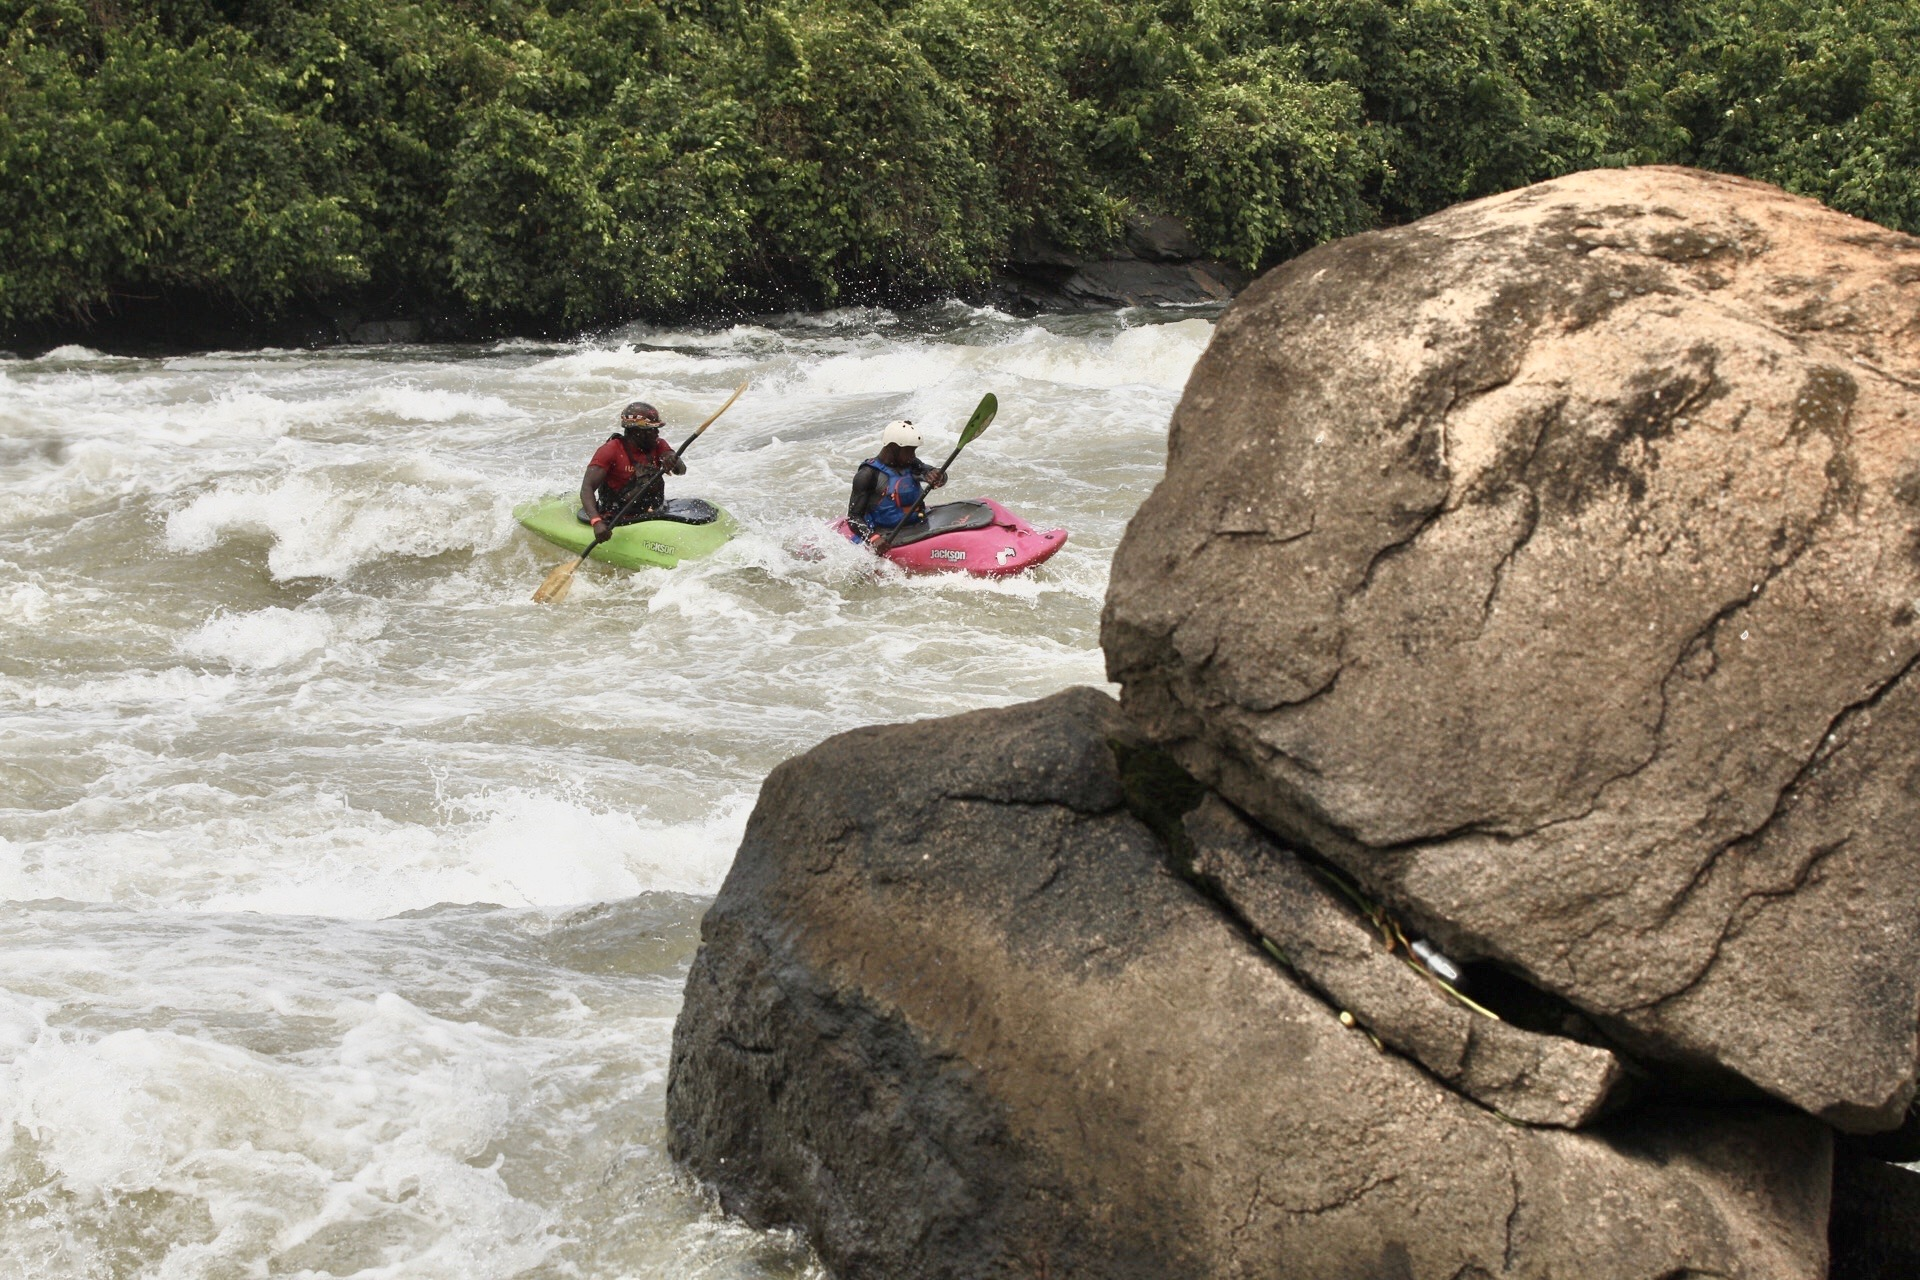 Paddlers racing down the Itanda section of the white NIle in Uganda during the 2020 Nile River Festival